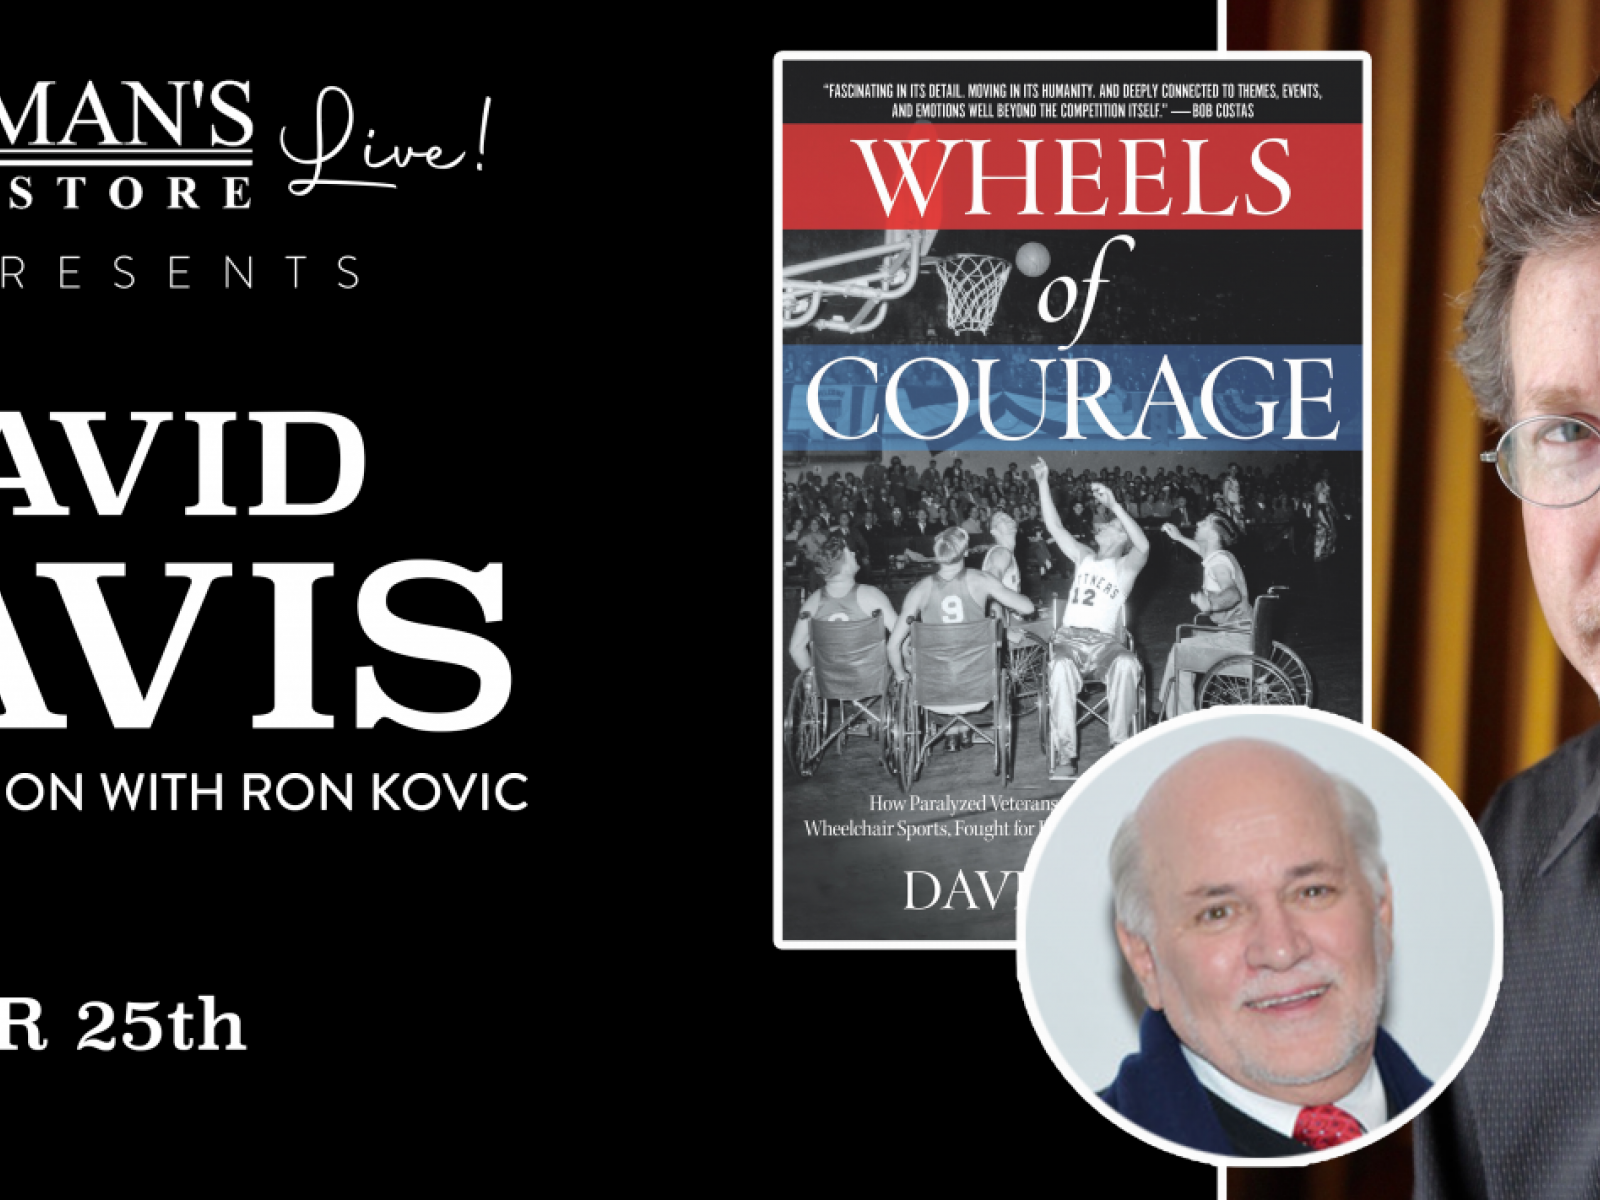 Main image for event titled Vroman's Live - David Davis, with Ron Kovic, discusses Wheels of Courage